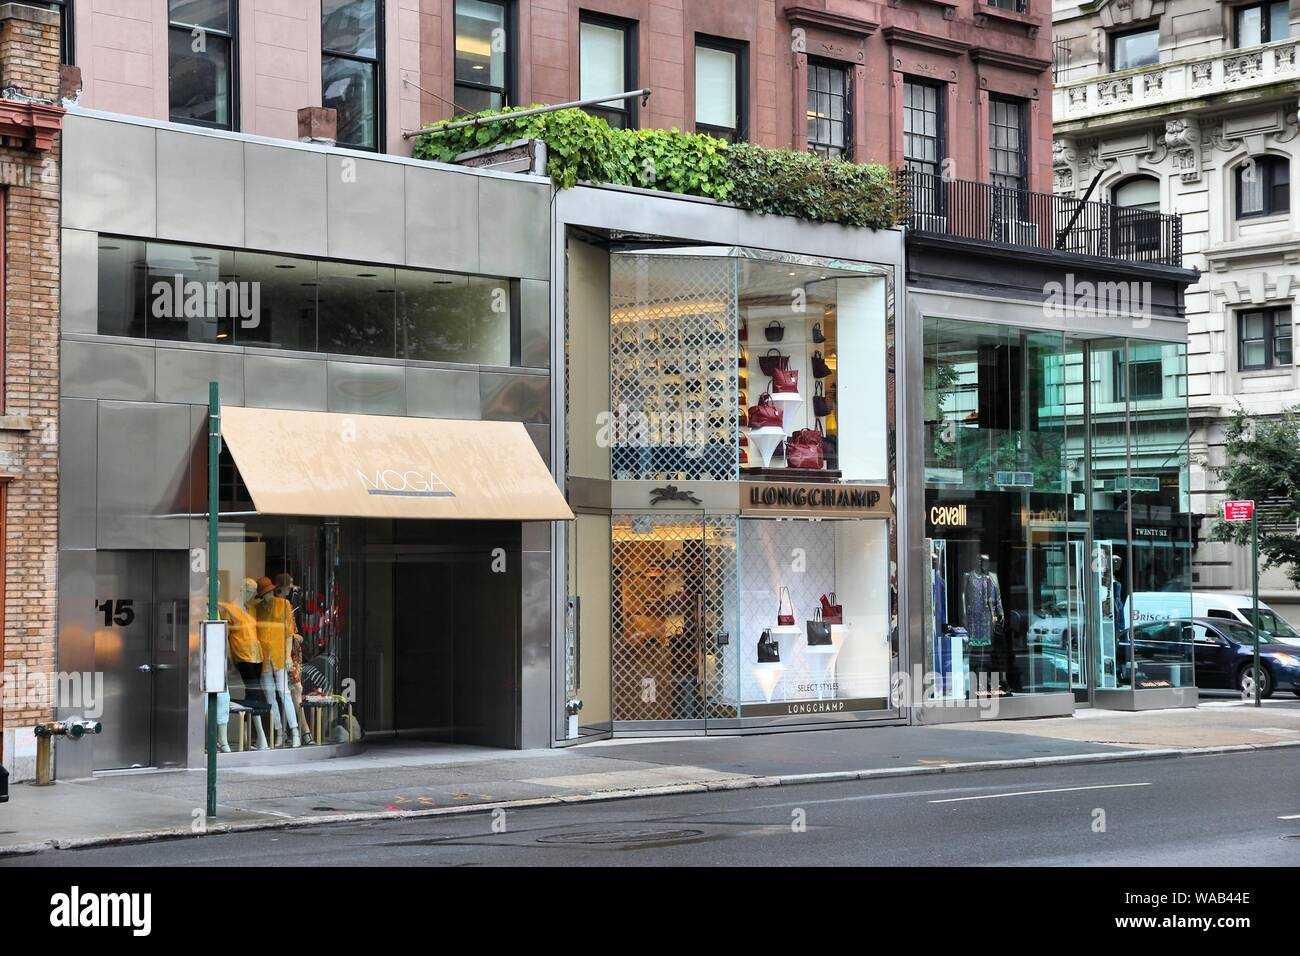 NEW YORK, USA - JULY 1, 2013: Stores along Madison Avenue in New York. Madison Avenue is one of the most recognized fashion shopping destination in th Stock Photo